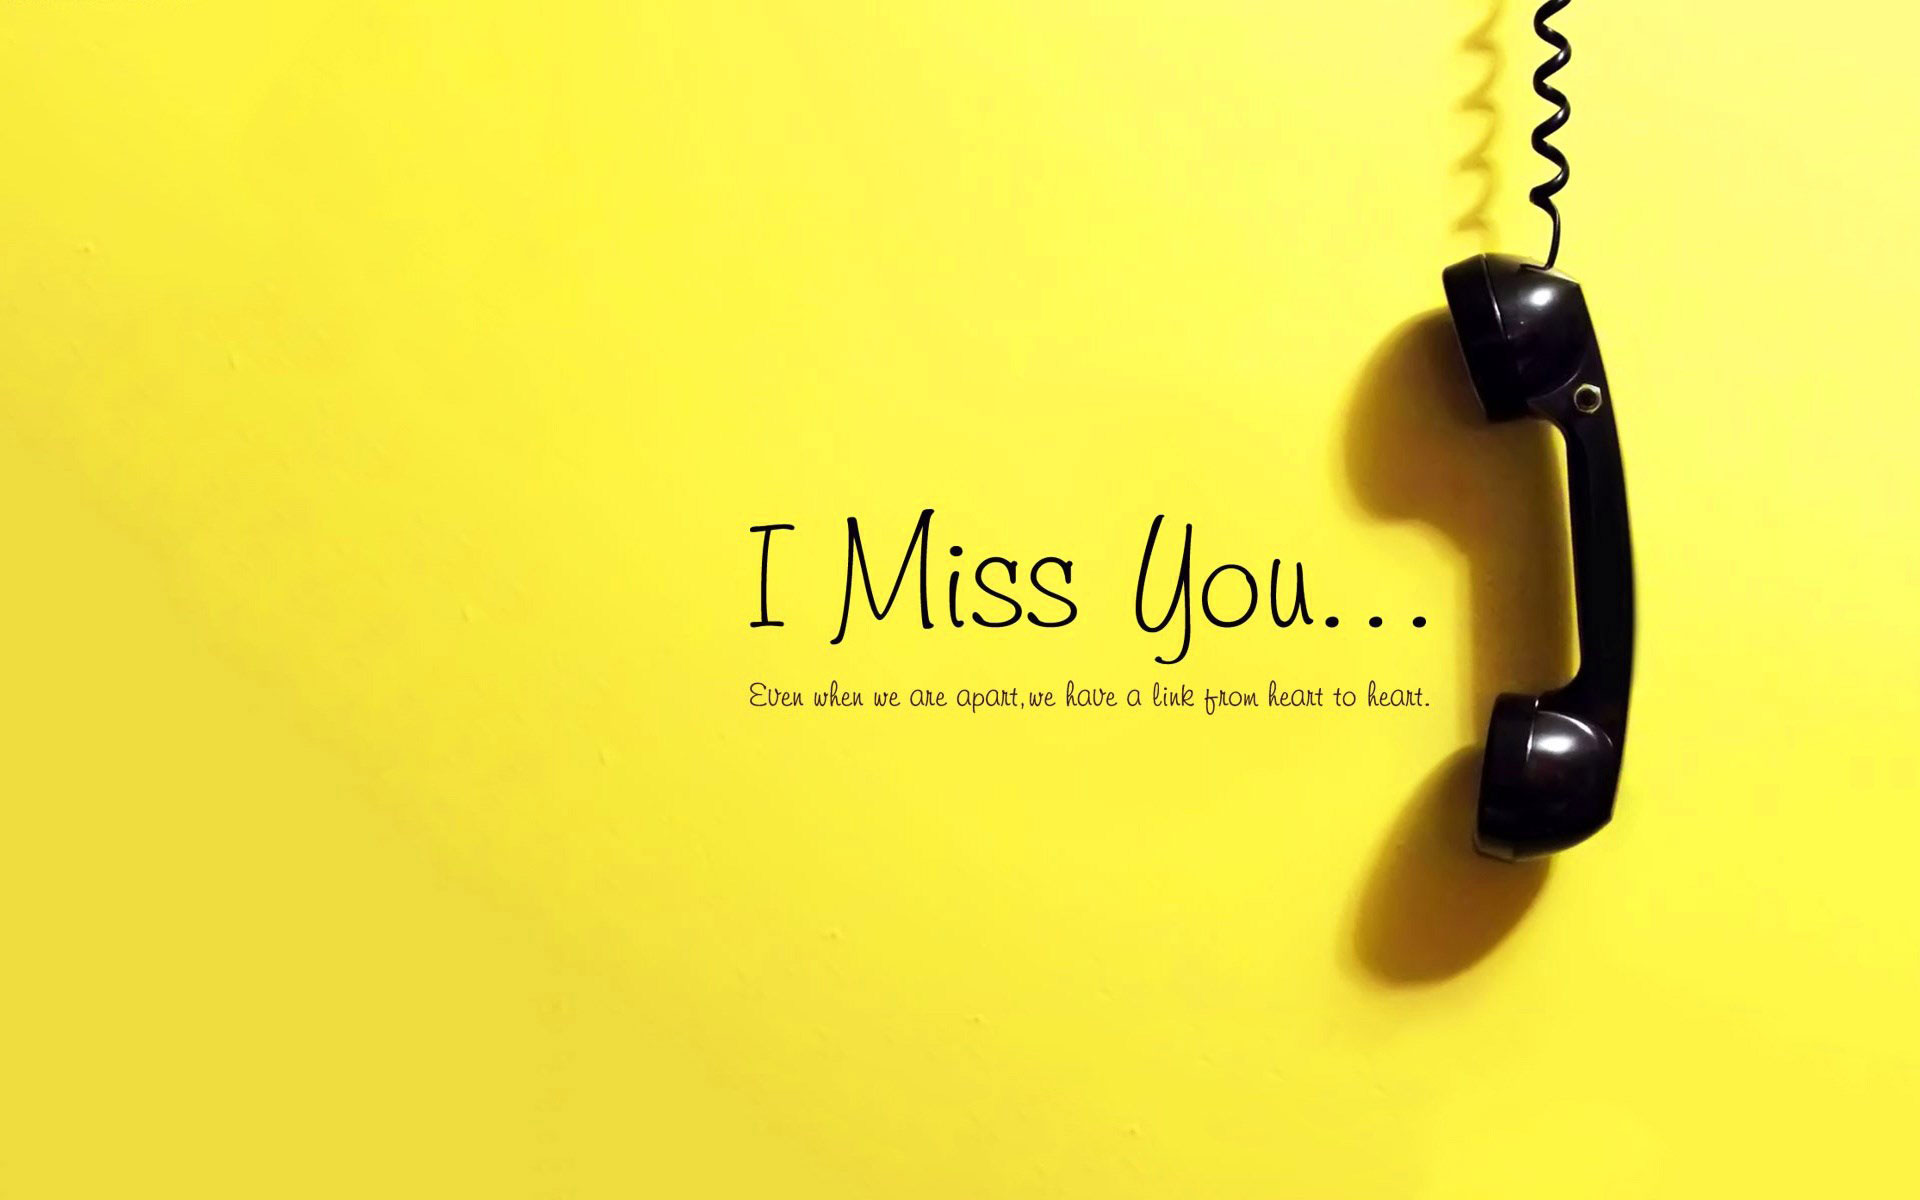 Missing You Love Quotes For Her Hd I Miss You Wallpaper For Him Or Herromantic Wallpaperschobirdokan